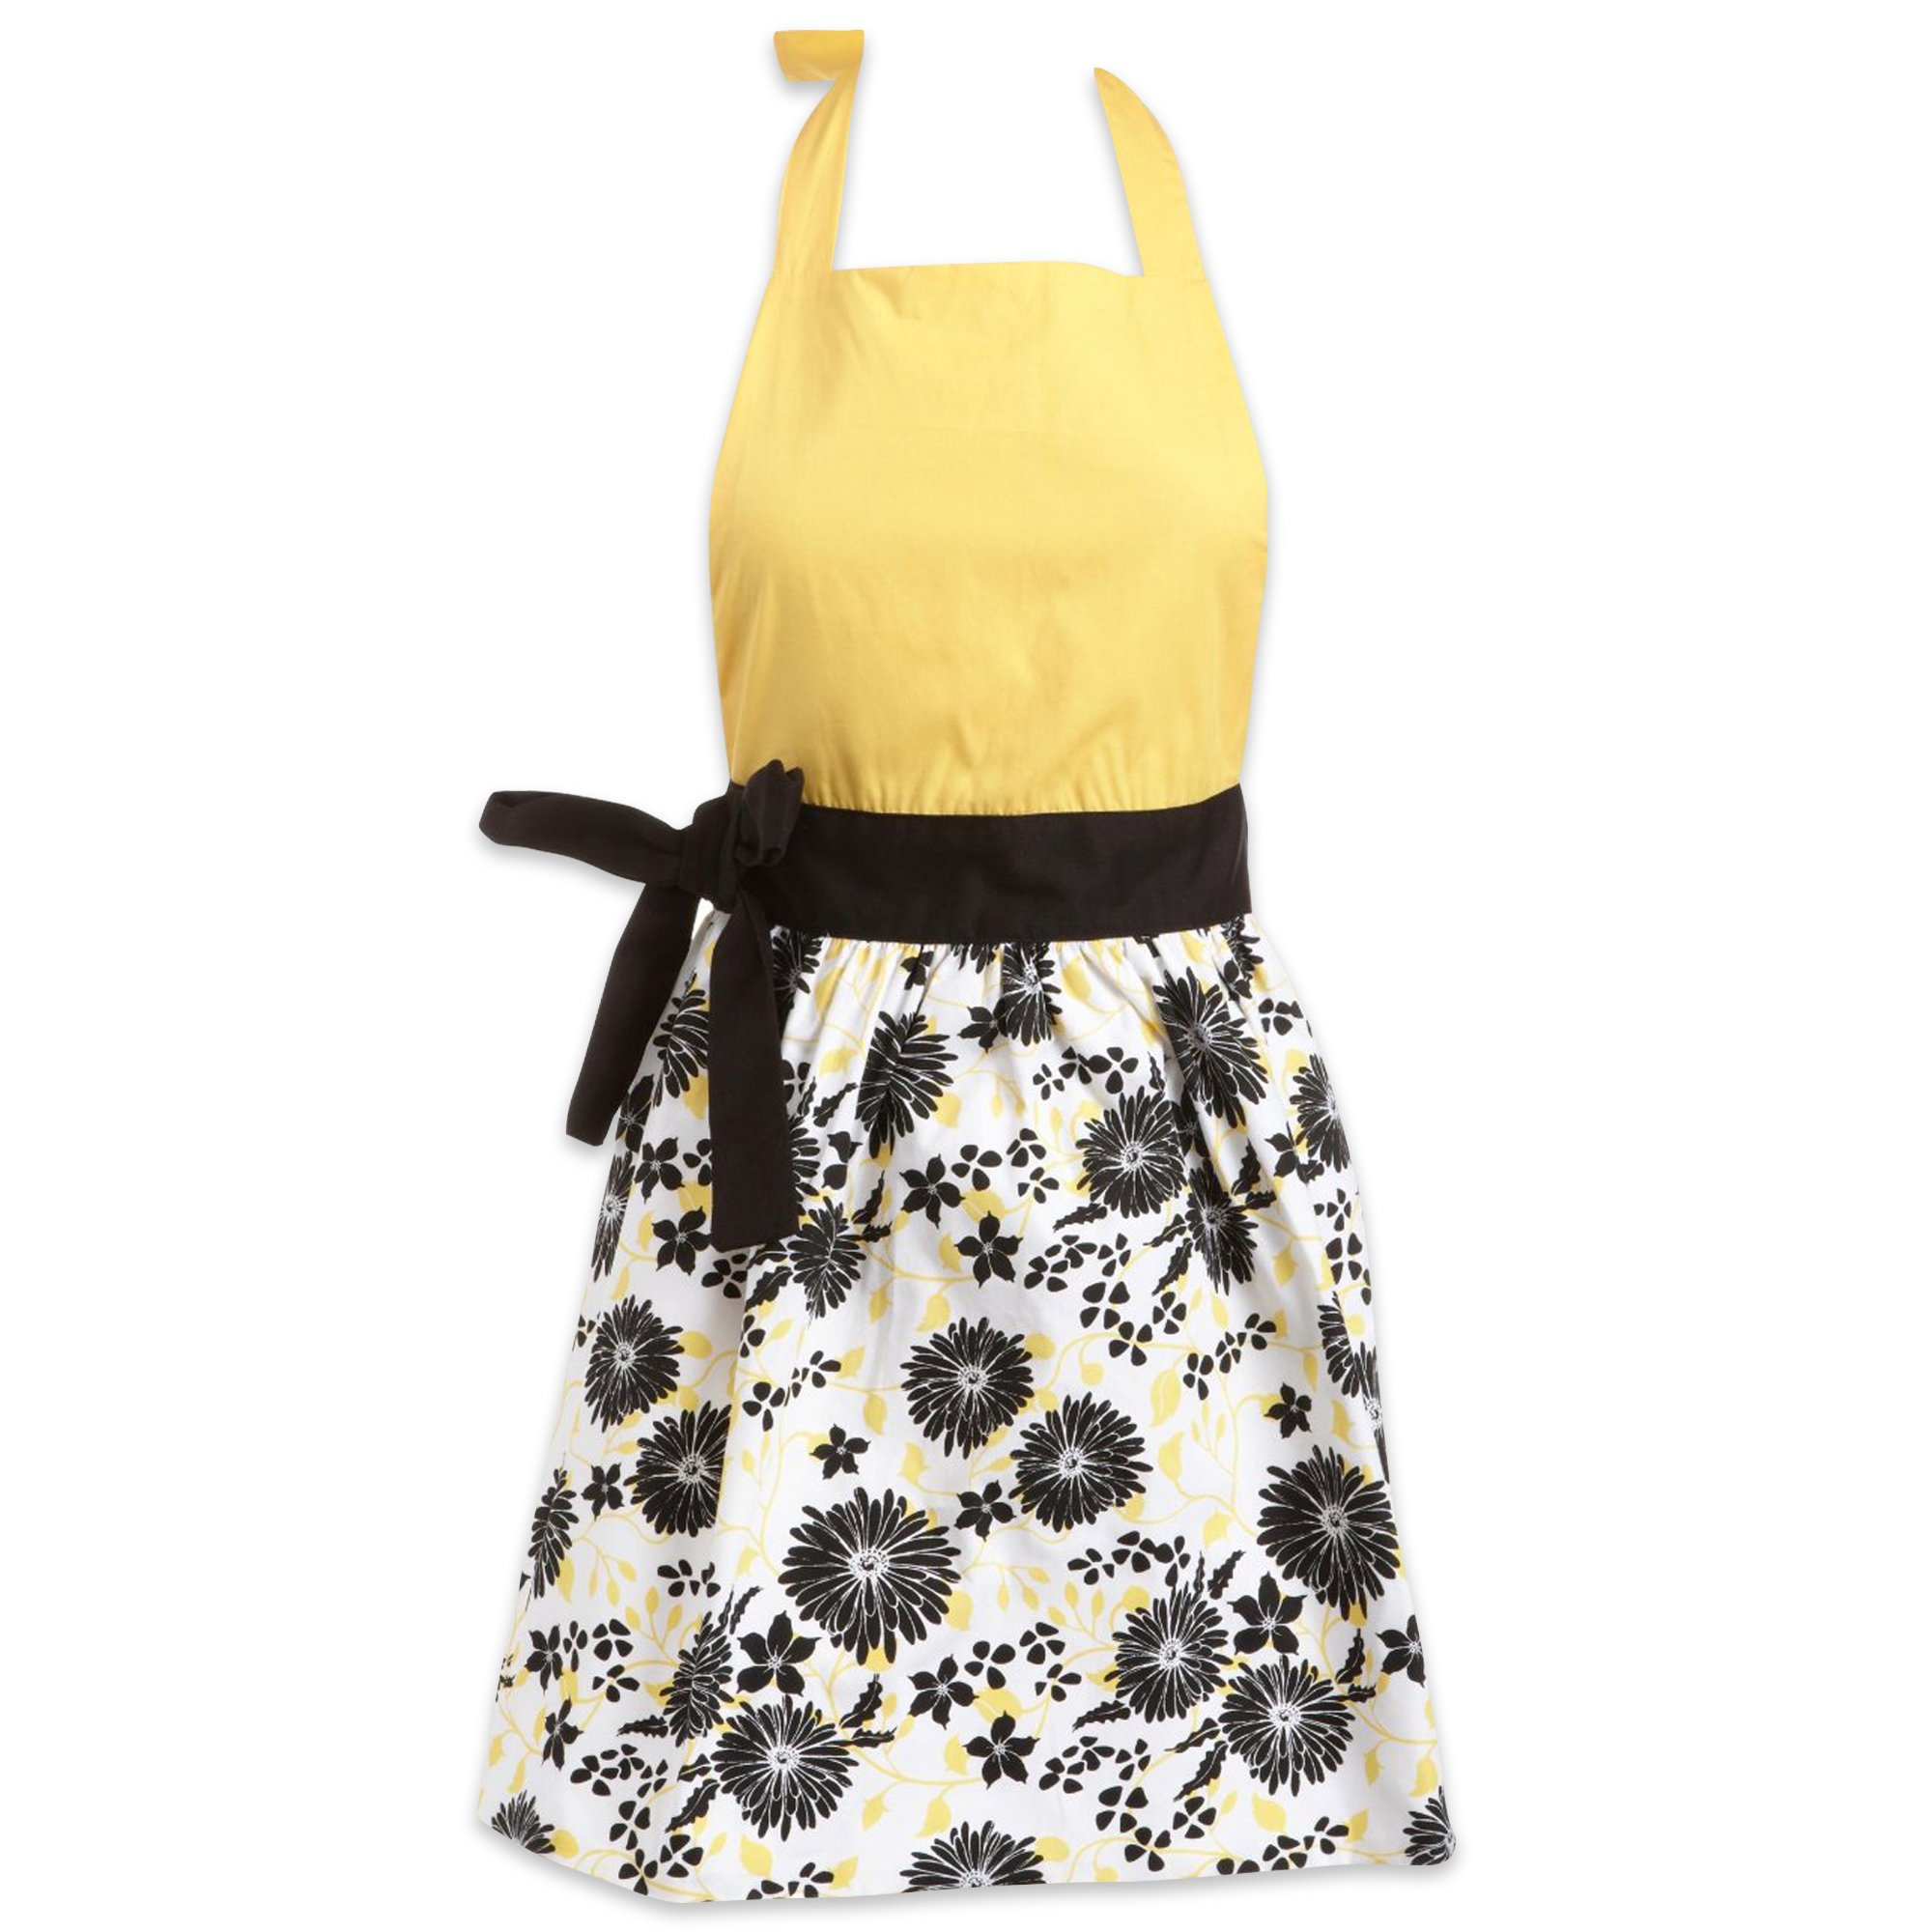 DII 100% Cotton, Trendy, Fashion, Daisy Skirt Ladies Women Apron, Kitchen Chef Adult Apron, Adjustable Neck & Waist Ties, Perfet for Gift, Cooking, Baking, Crafting- Black